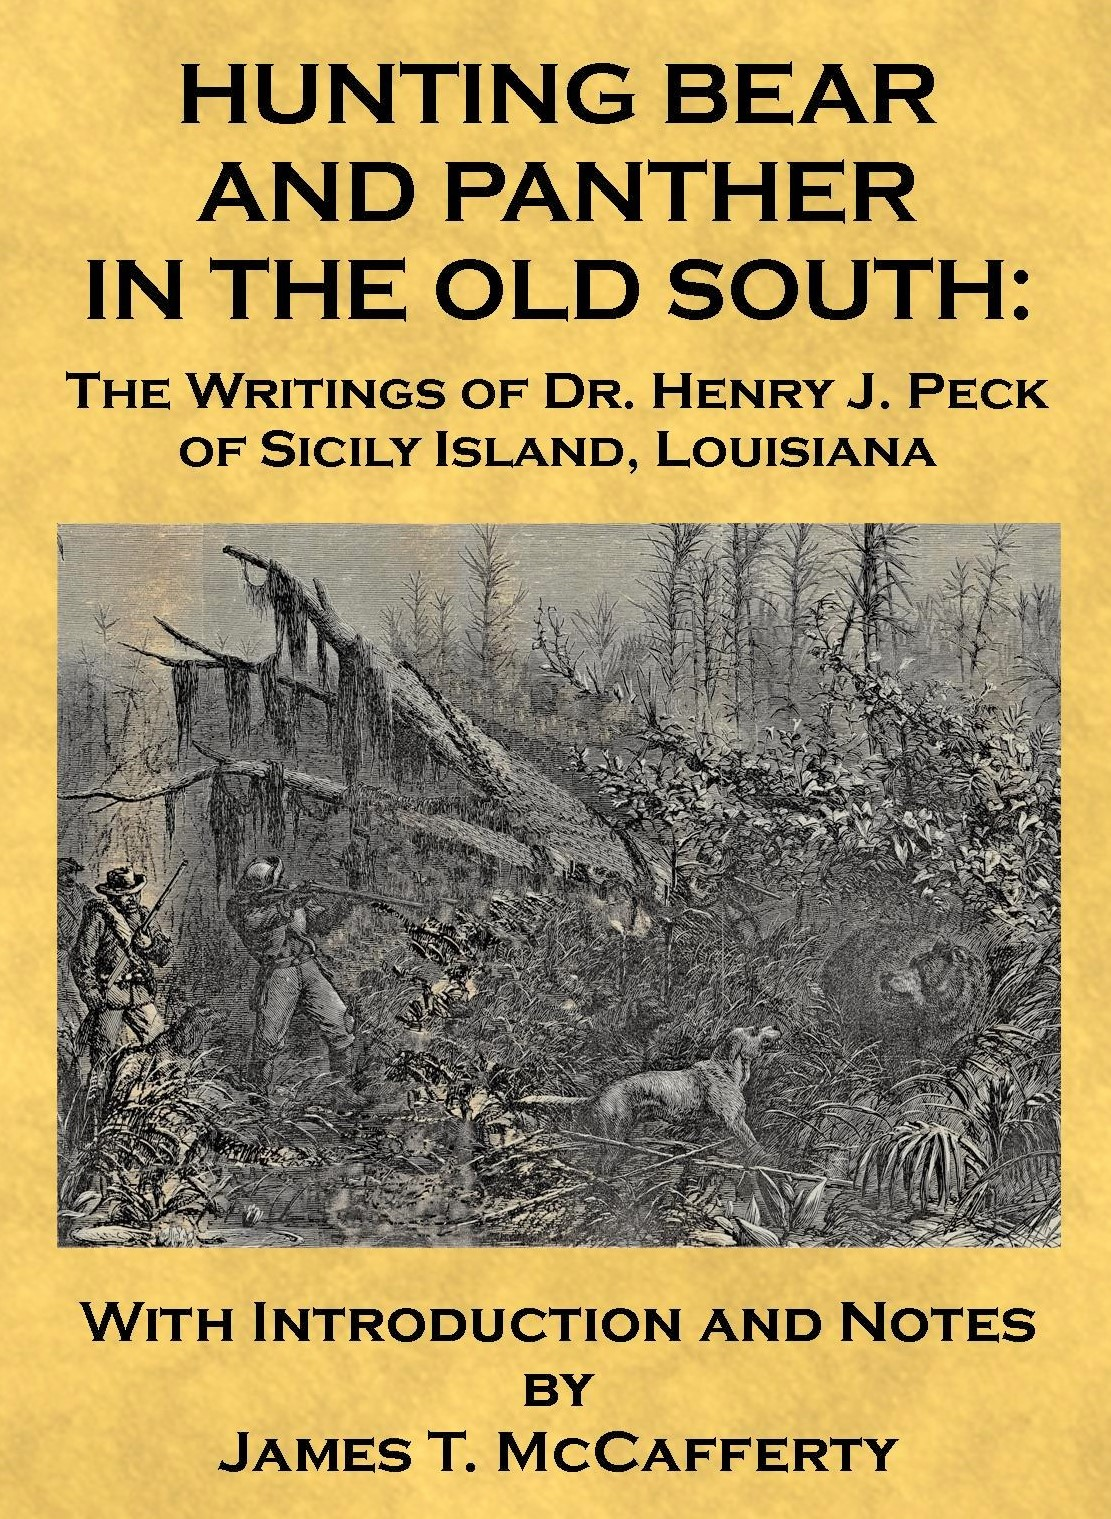 Hunting Bear and Panther in the Old South